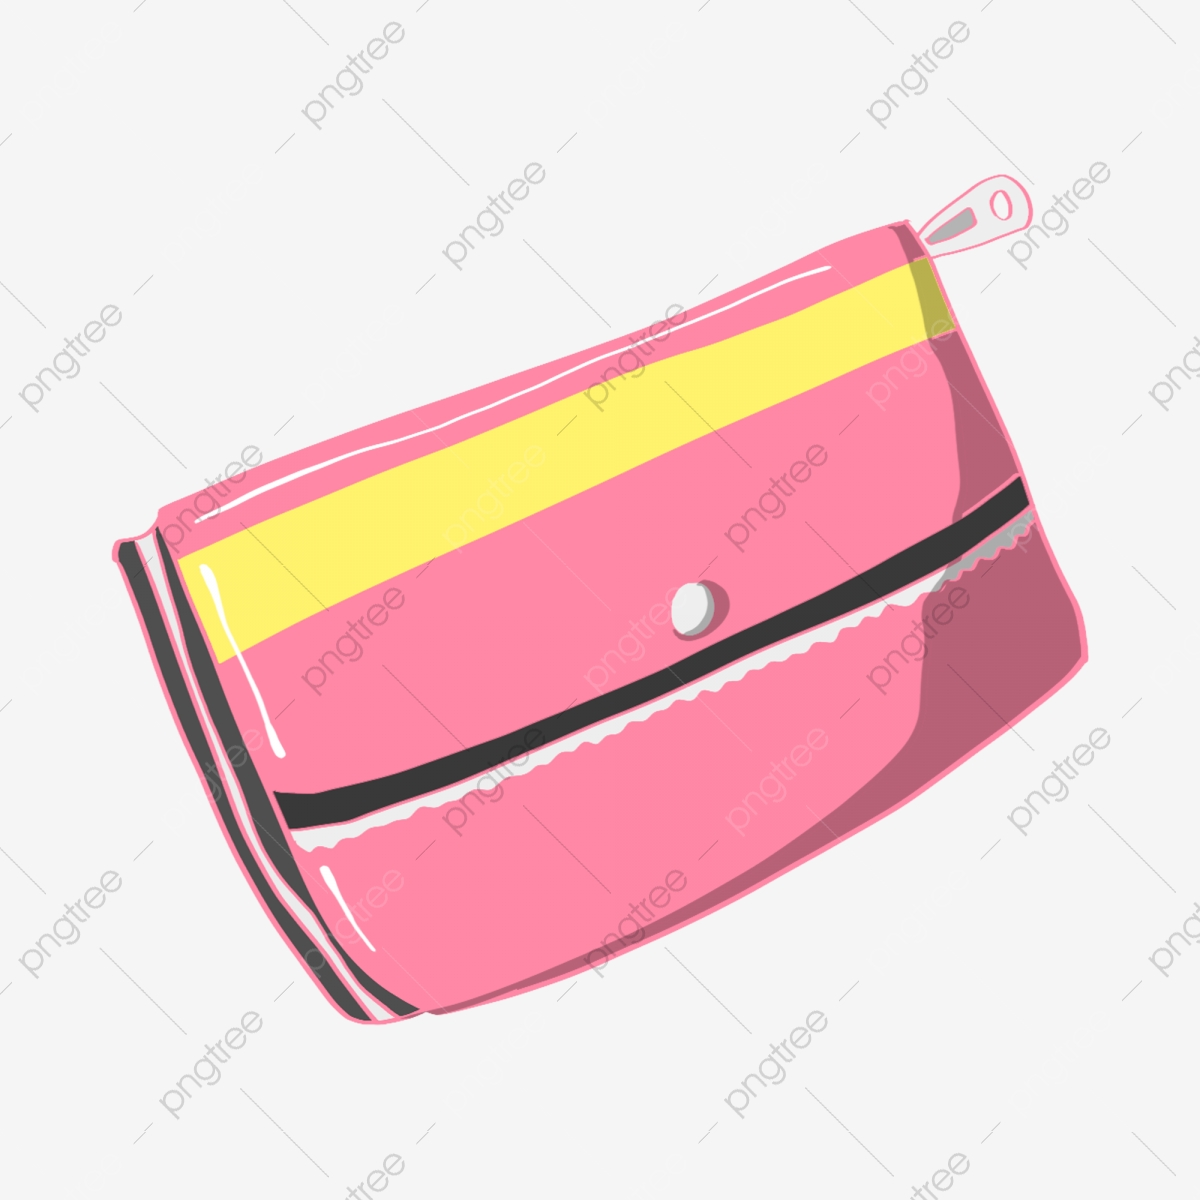 Cosmetic Bag Png Images Vector And Psd Files Free Download On Pngtree